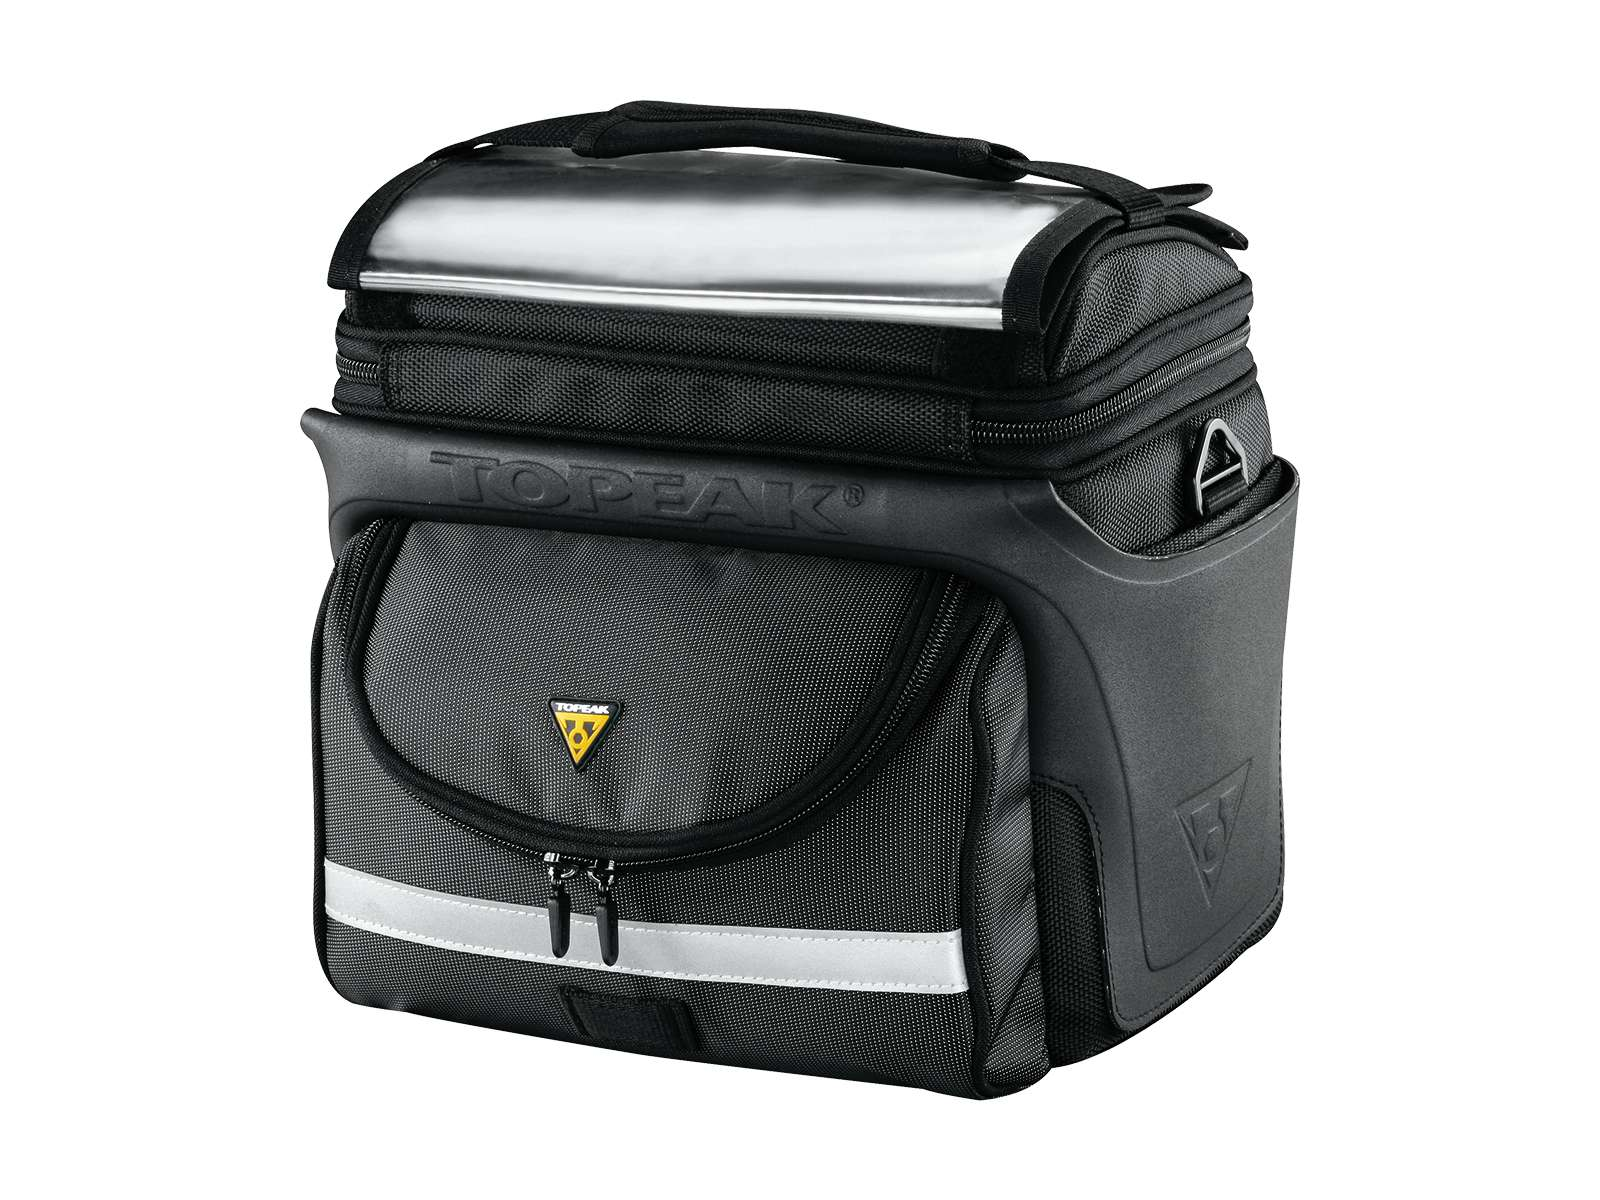 Topeak tour guide handlebar bag dx | free shipping.